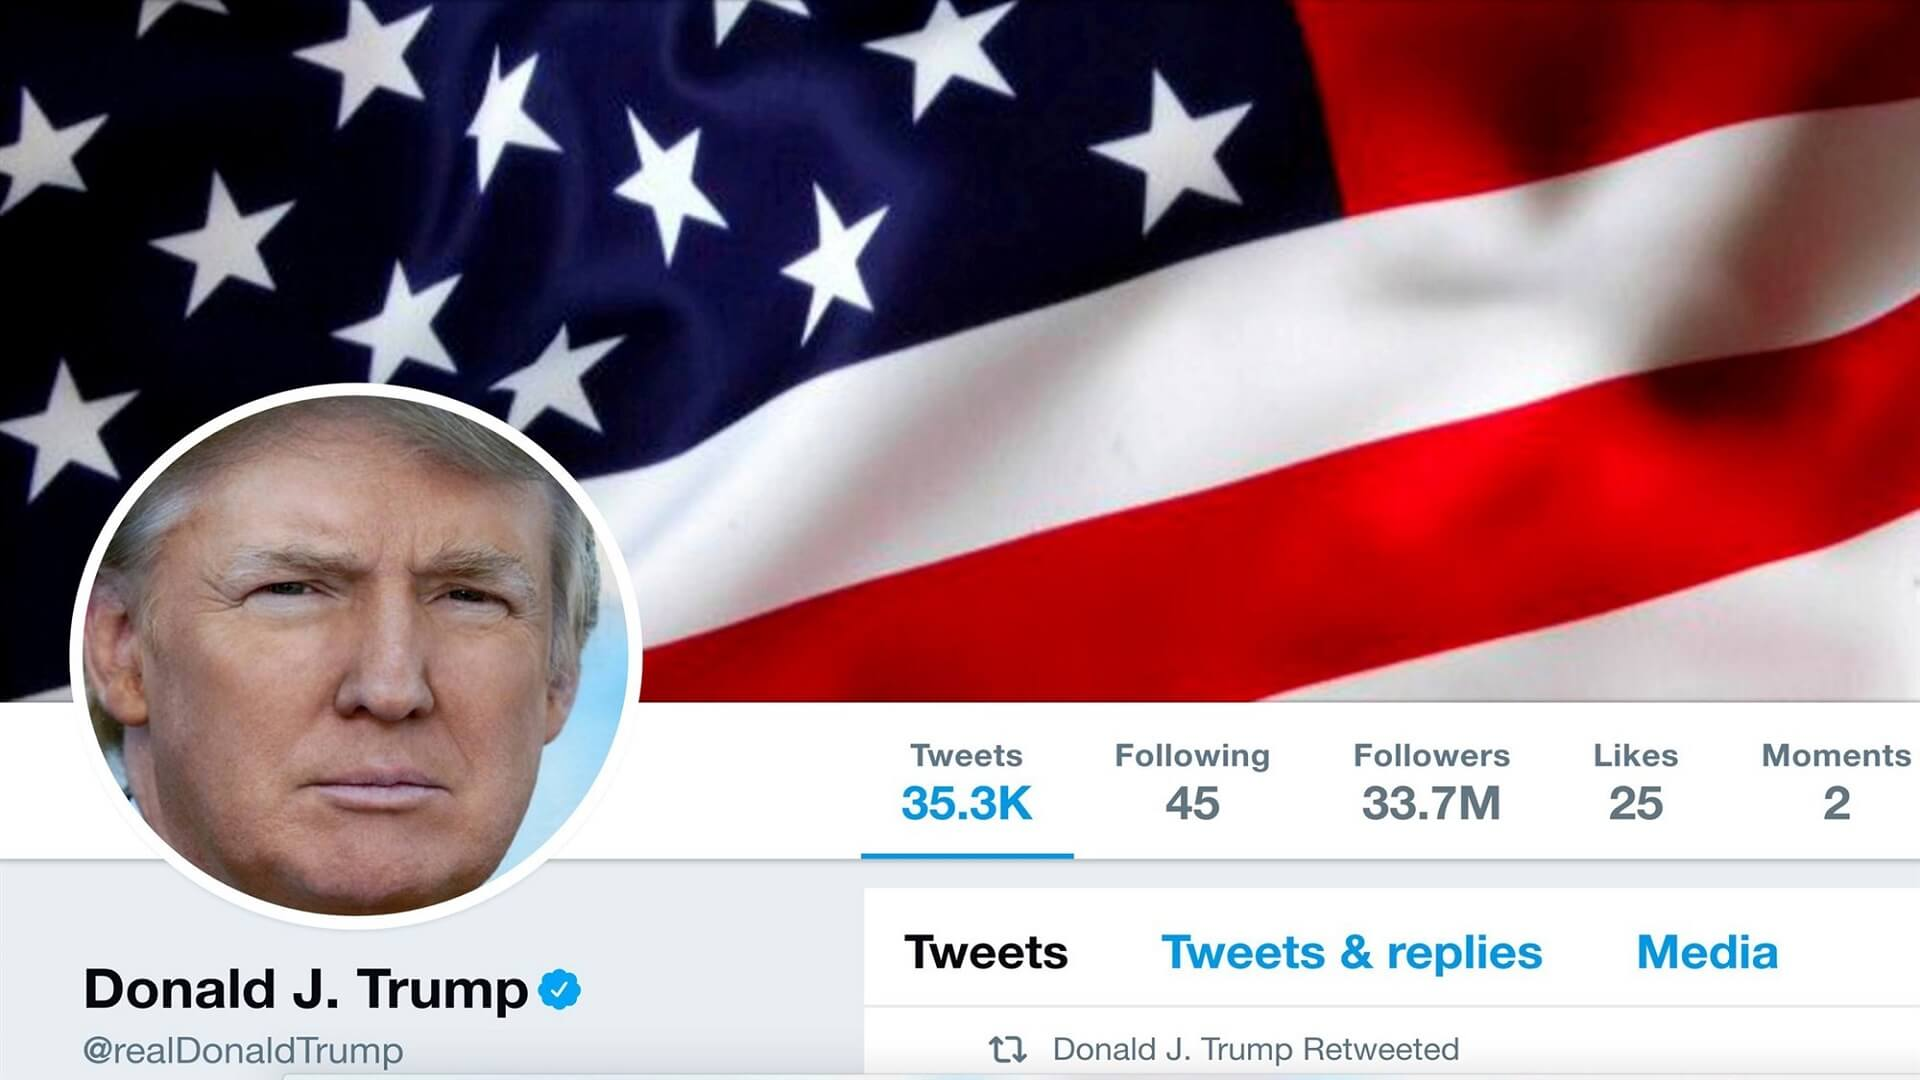 Analysis of Donald Trump's Communication Style on Twitter between 2009 and 2018